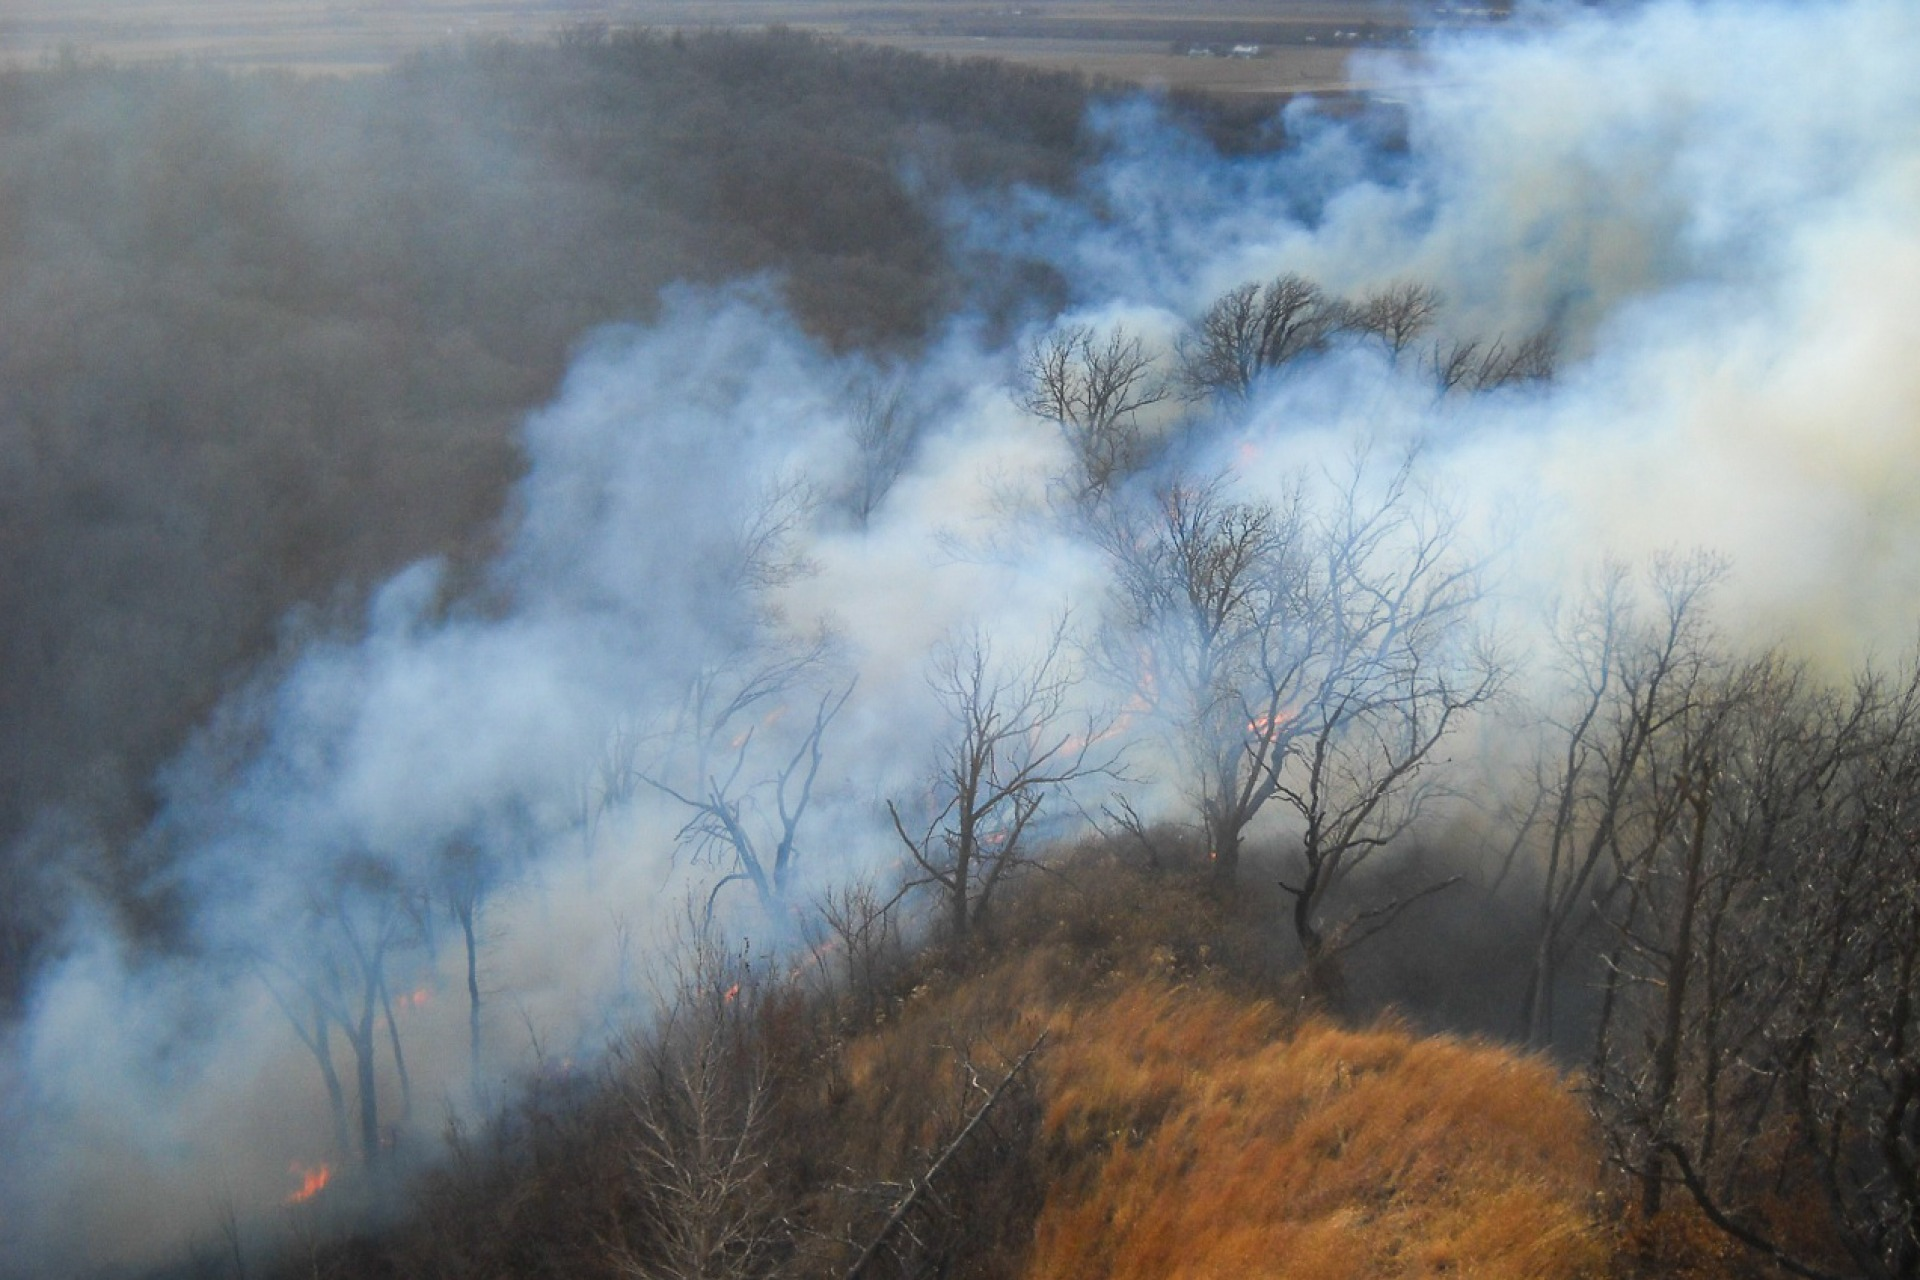 Prescribed fire in a Pottawattamie County park.